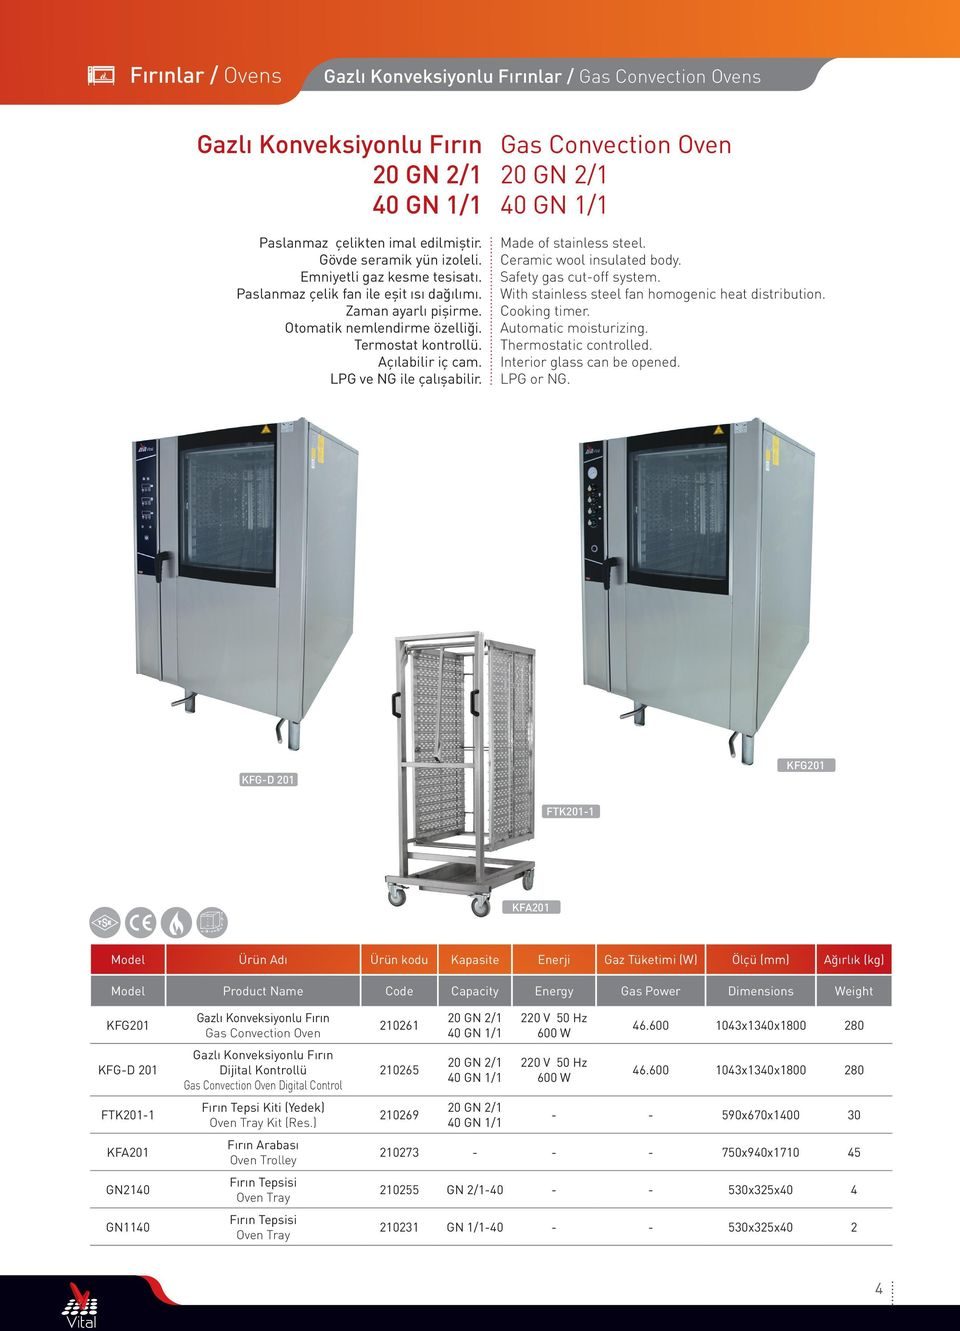 Gas Convection Oven 20 GN 2/1 40 GN 1/1 Ceramic wool insulated body. Safety gas cutoff system. With stainless steel fan homogenic heat distribution. Cooking timer. Automatic moisturizing.